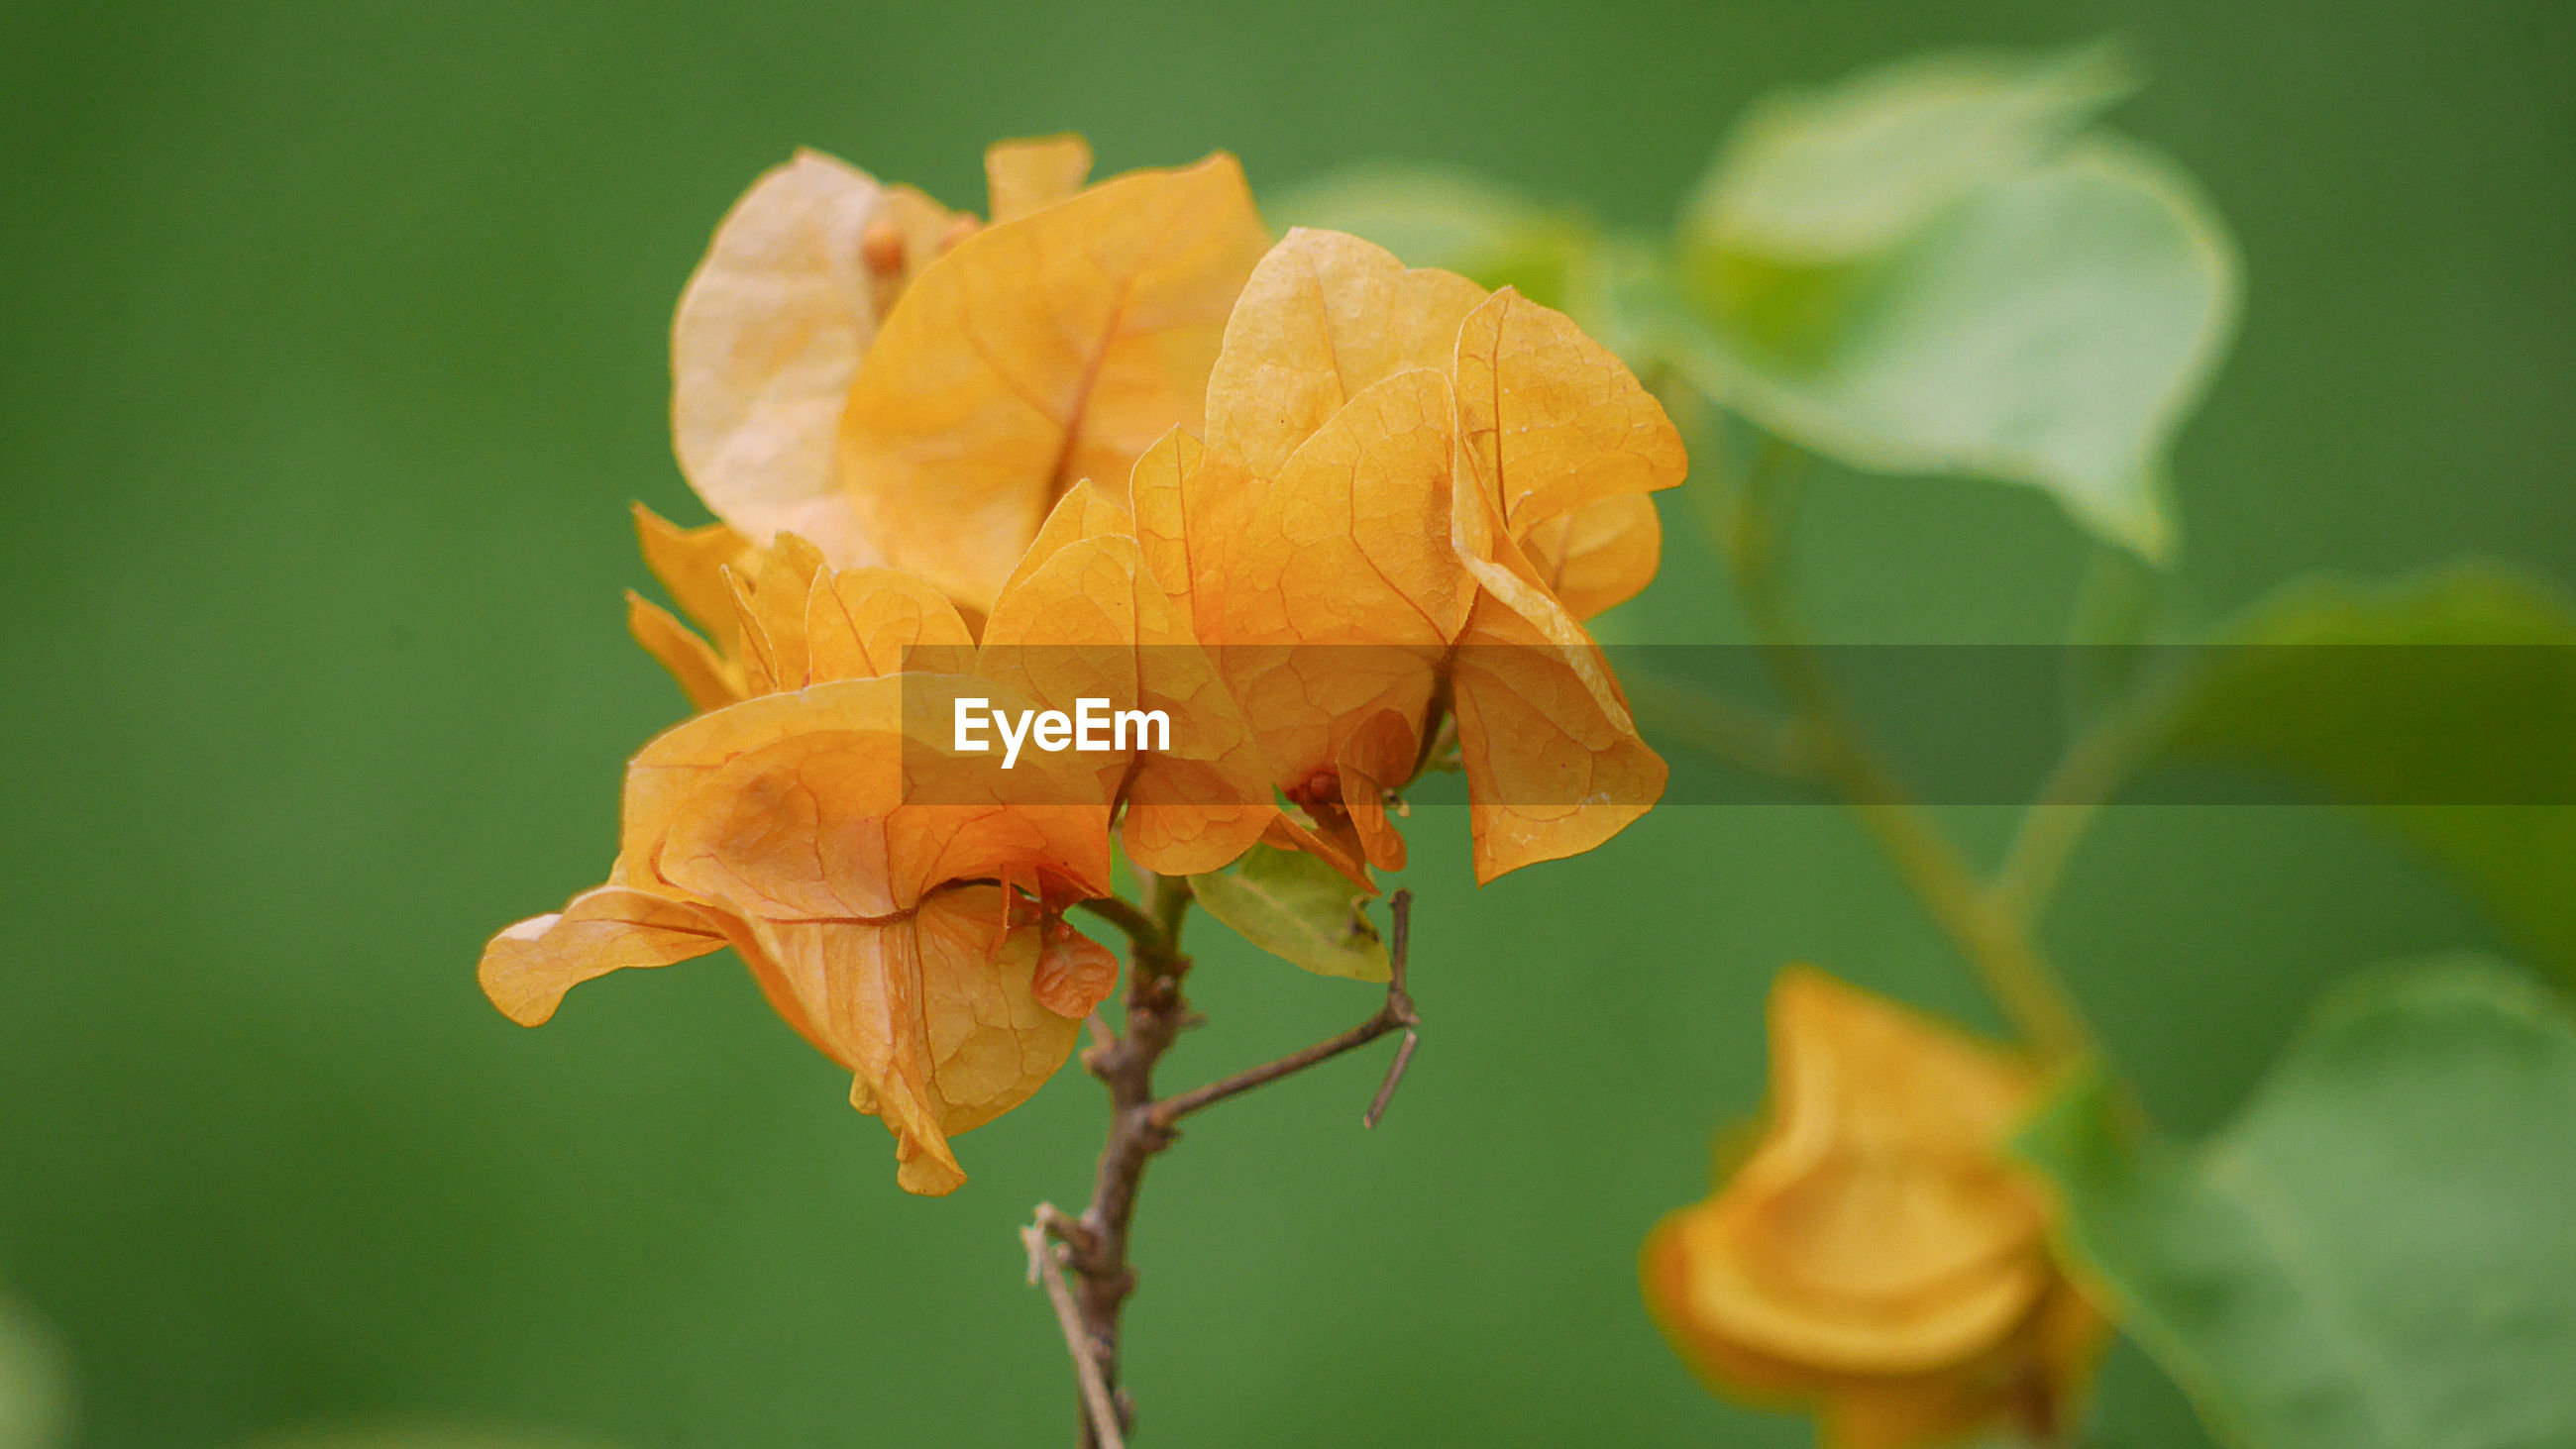 CLOSE-UP OF WILTED ORANGE FLOWER PLANT